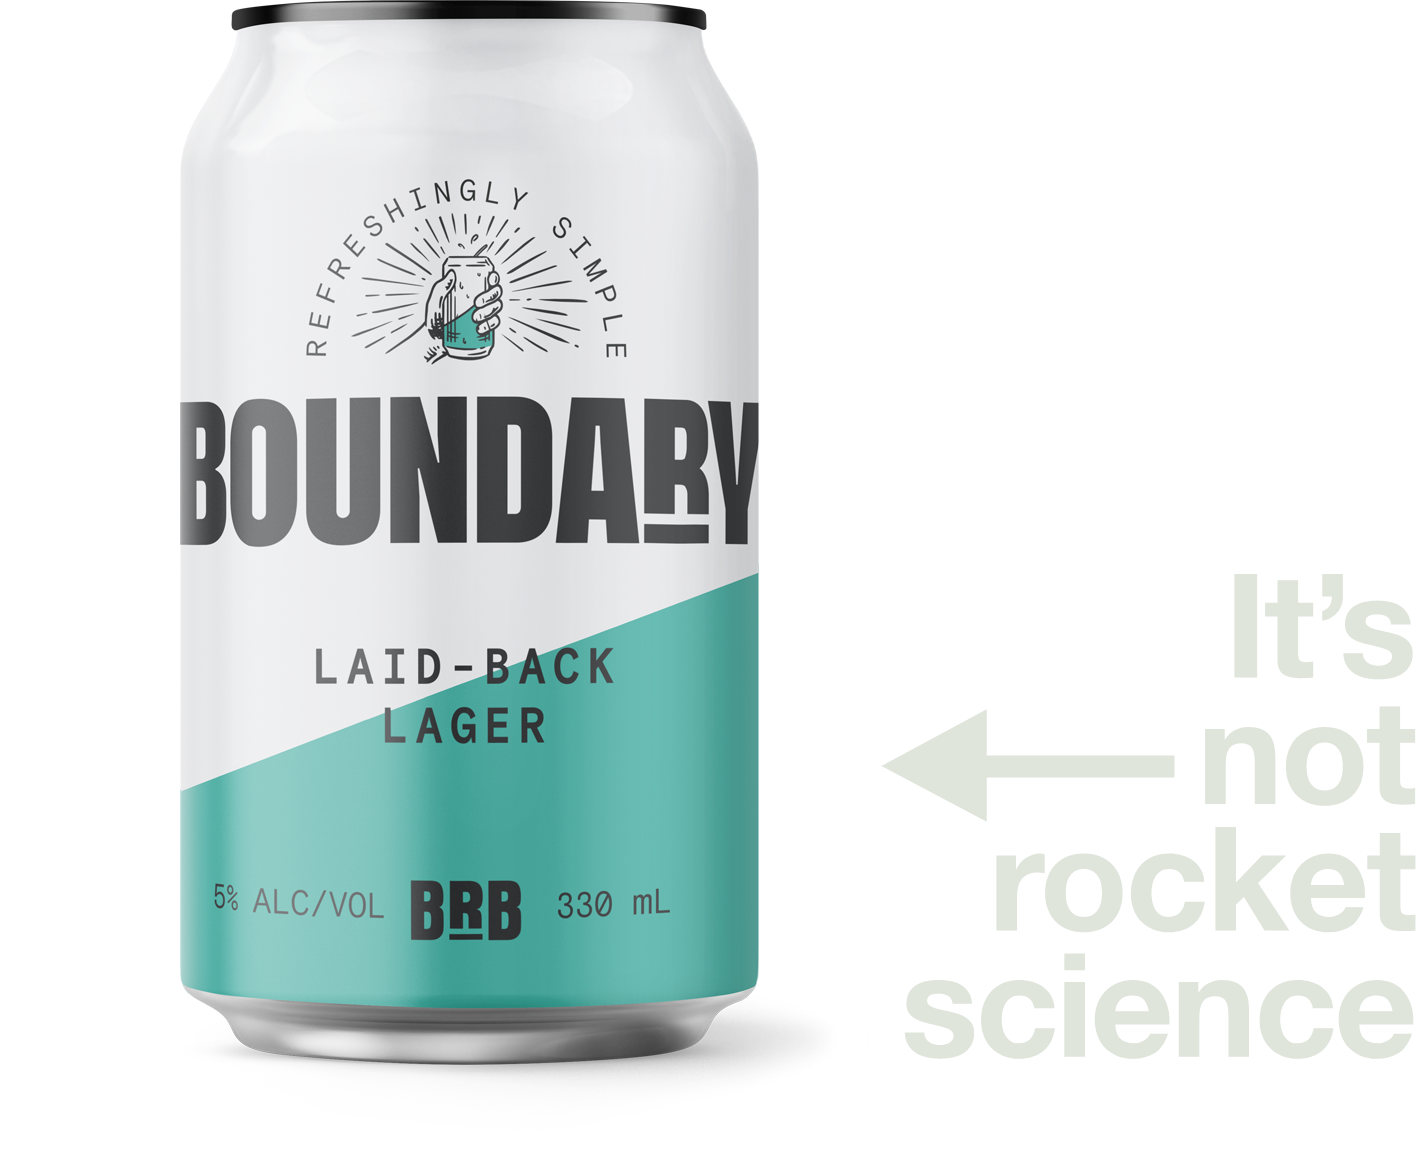 A can of the Boundary Laid-back Lager beer. Text reads: it's not rocker science